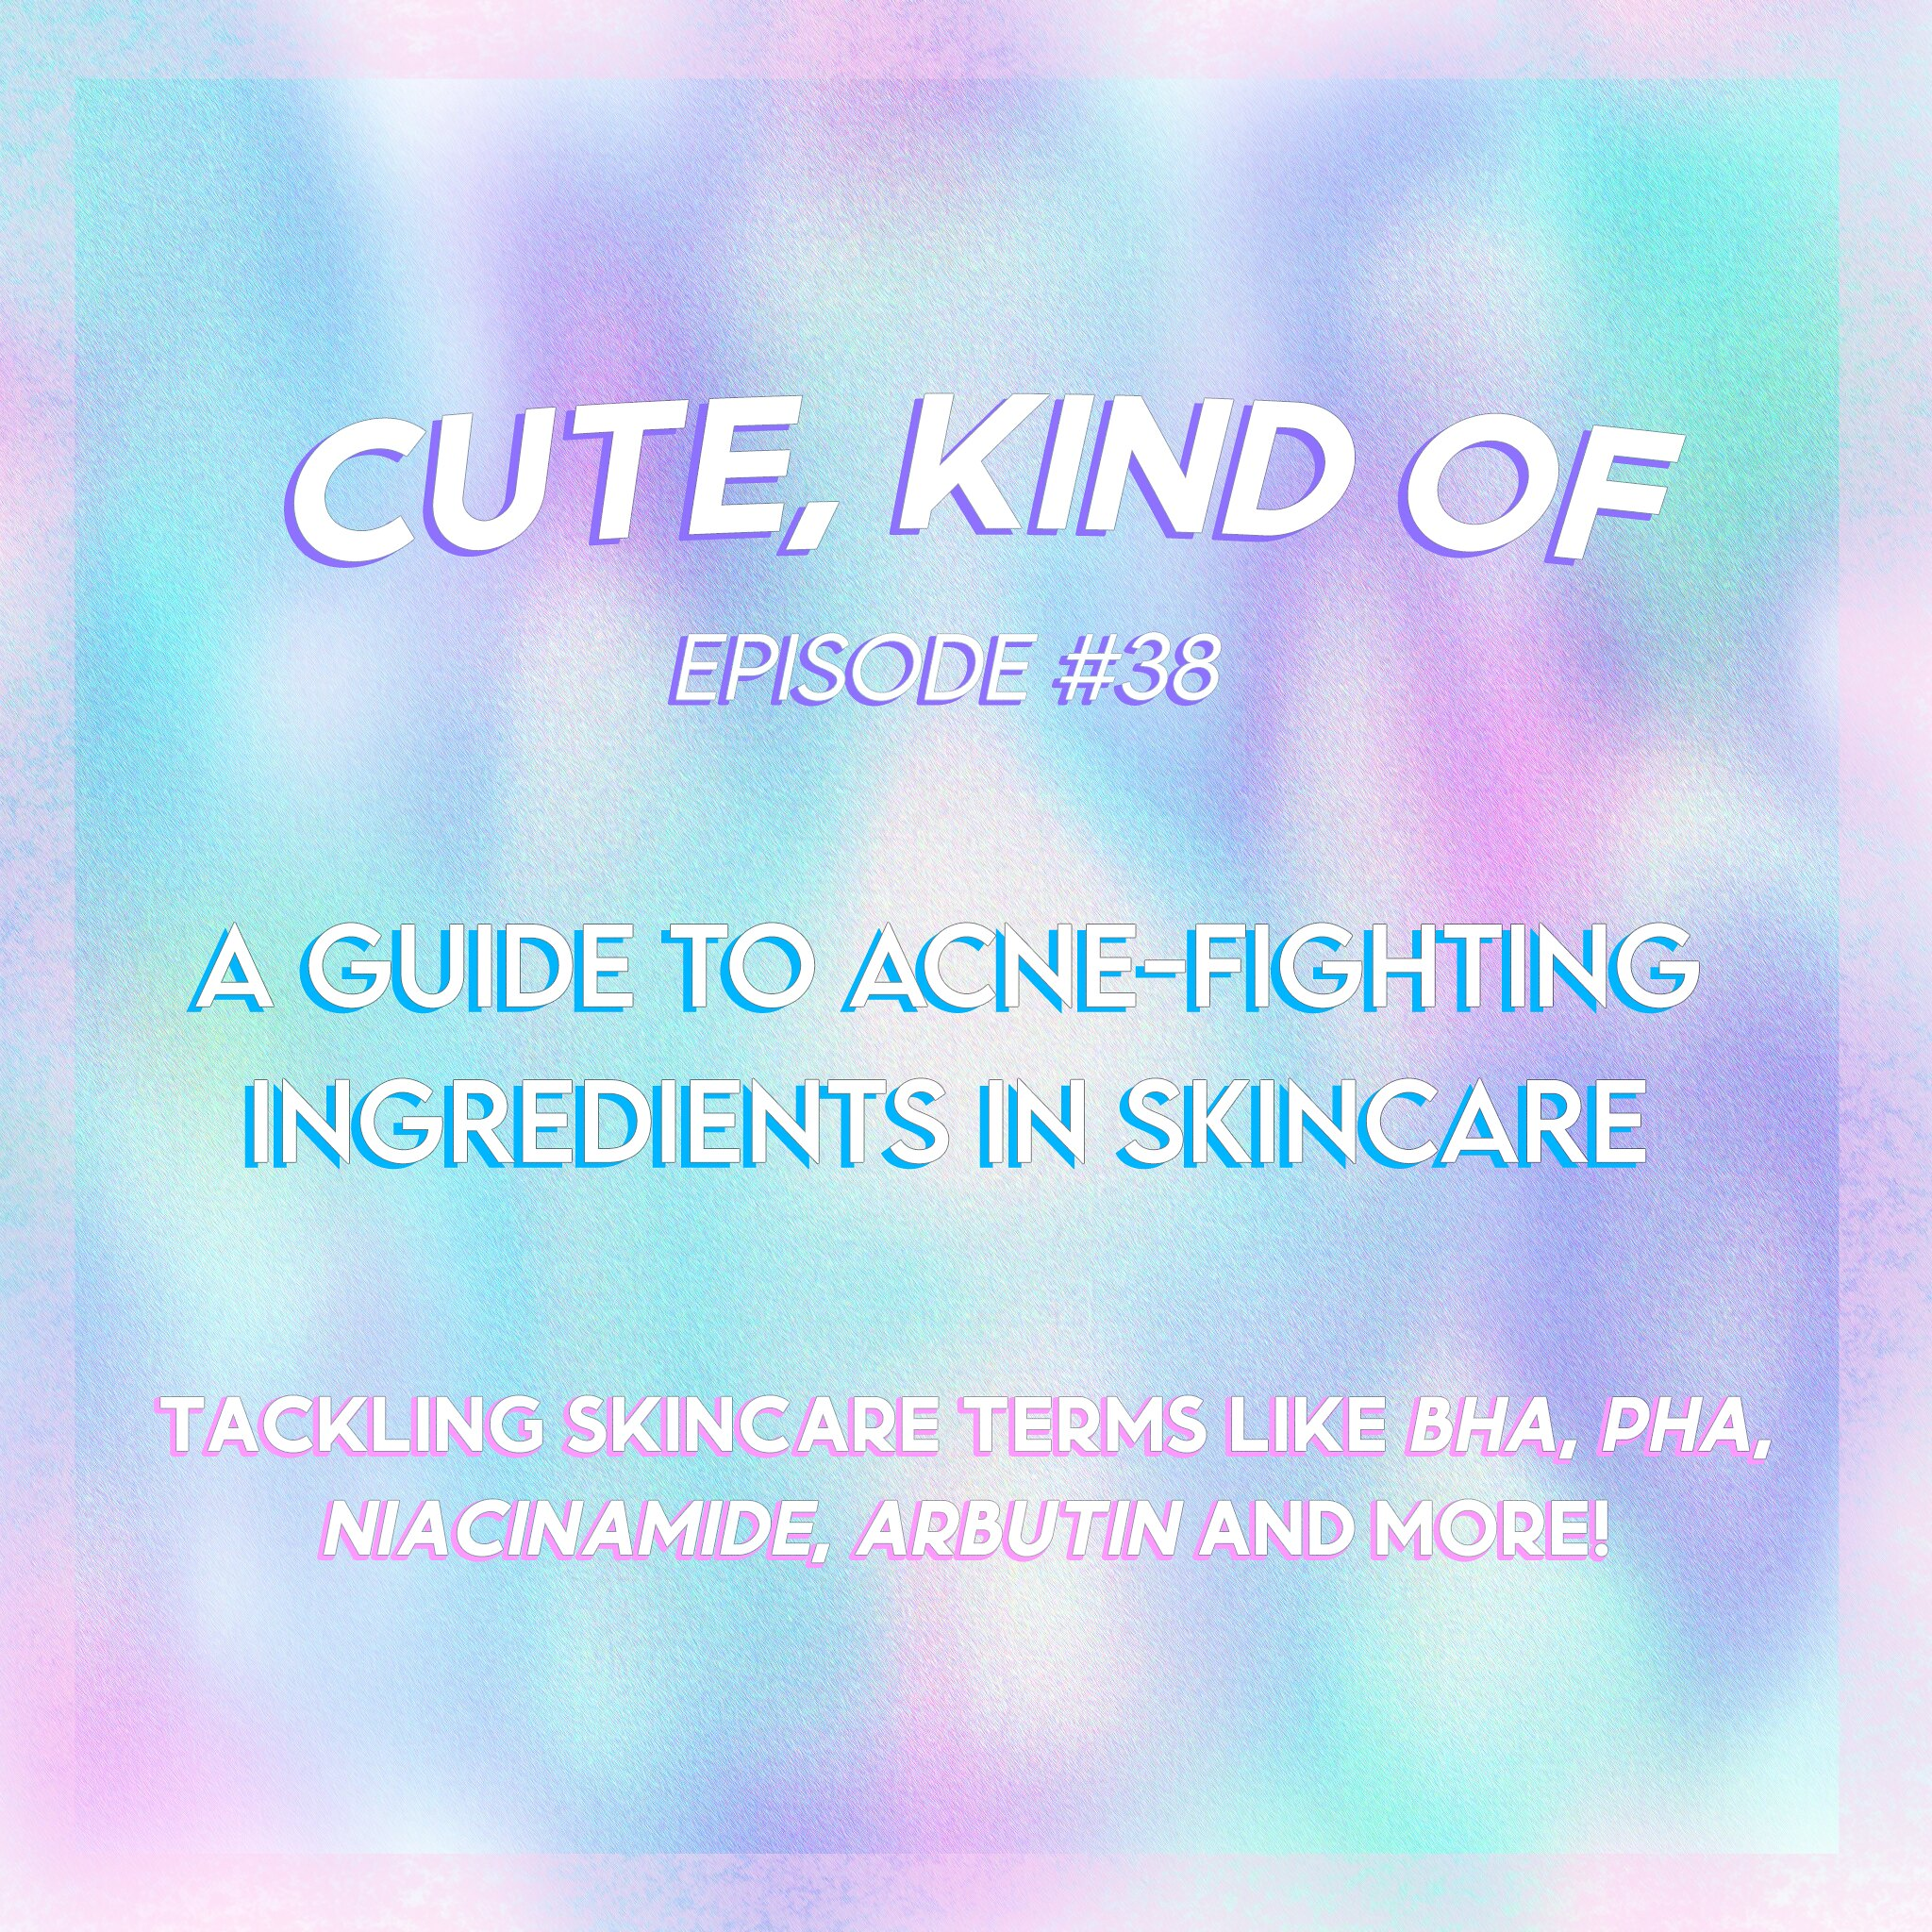 acne-ingredients_090820